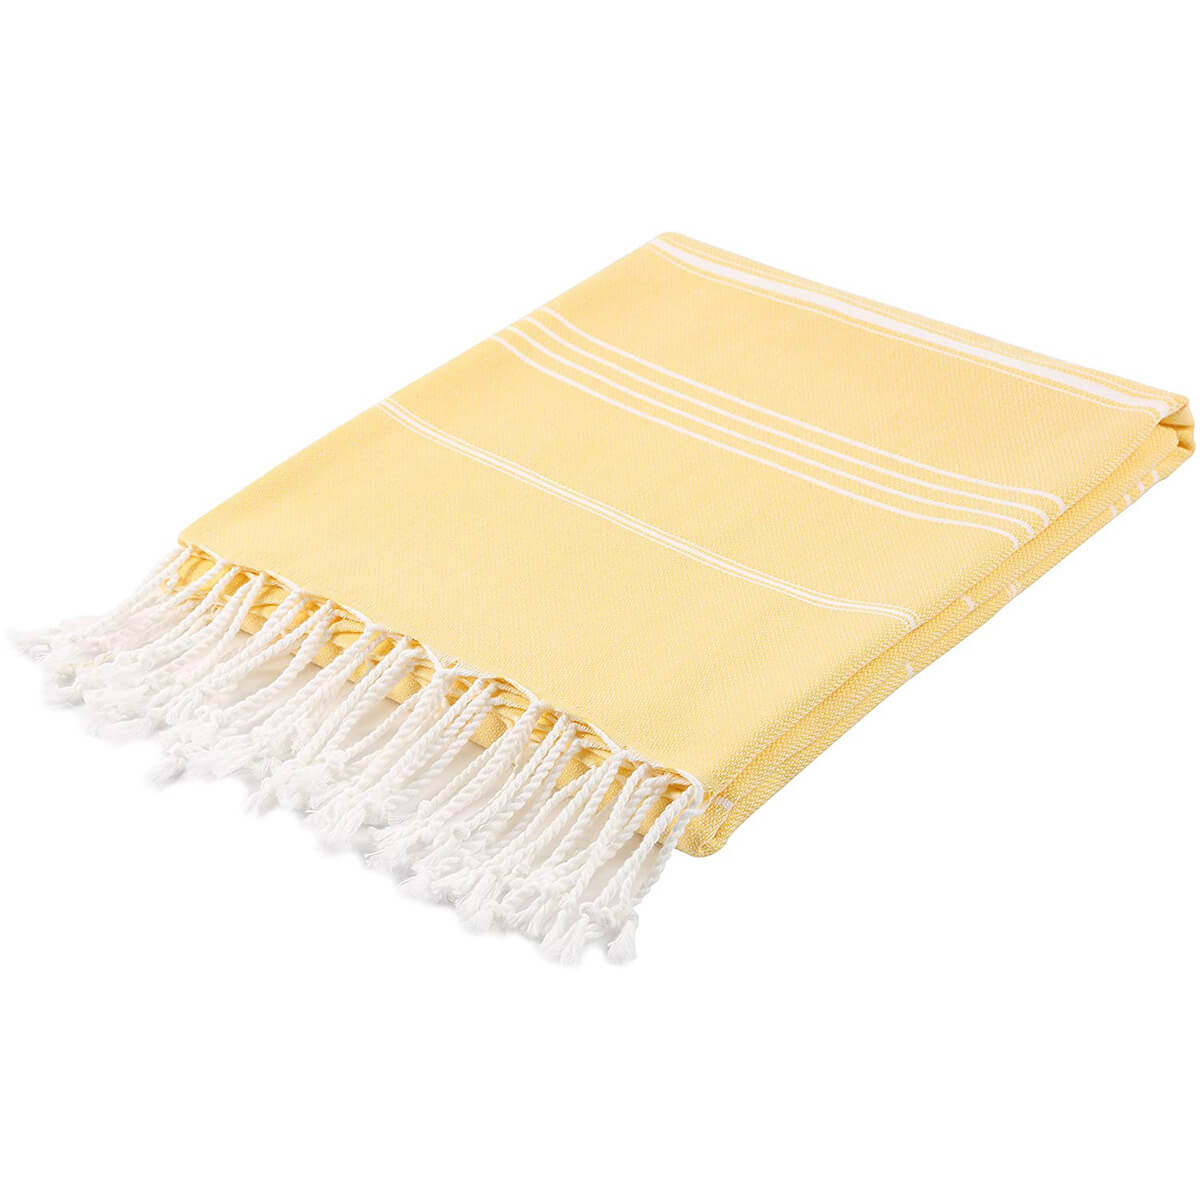 Cacala Pestemal Turkish Bath Towels